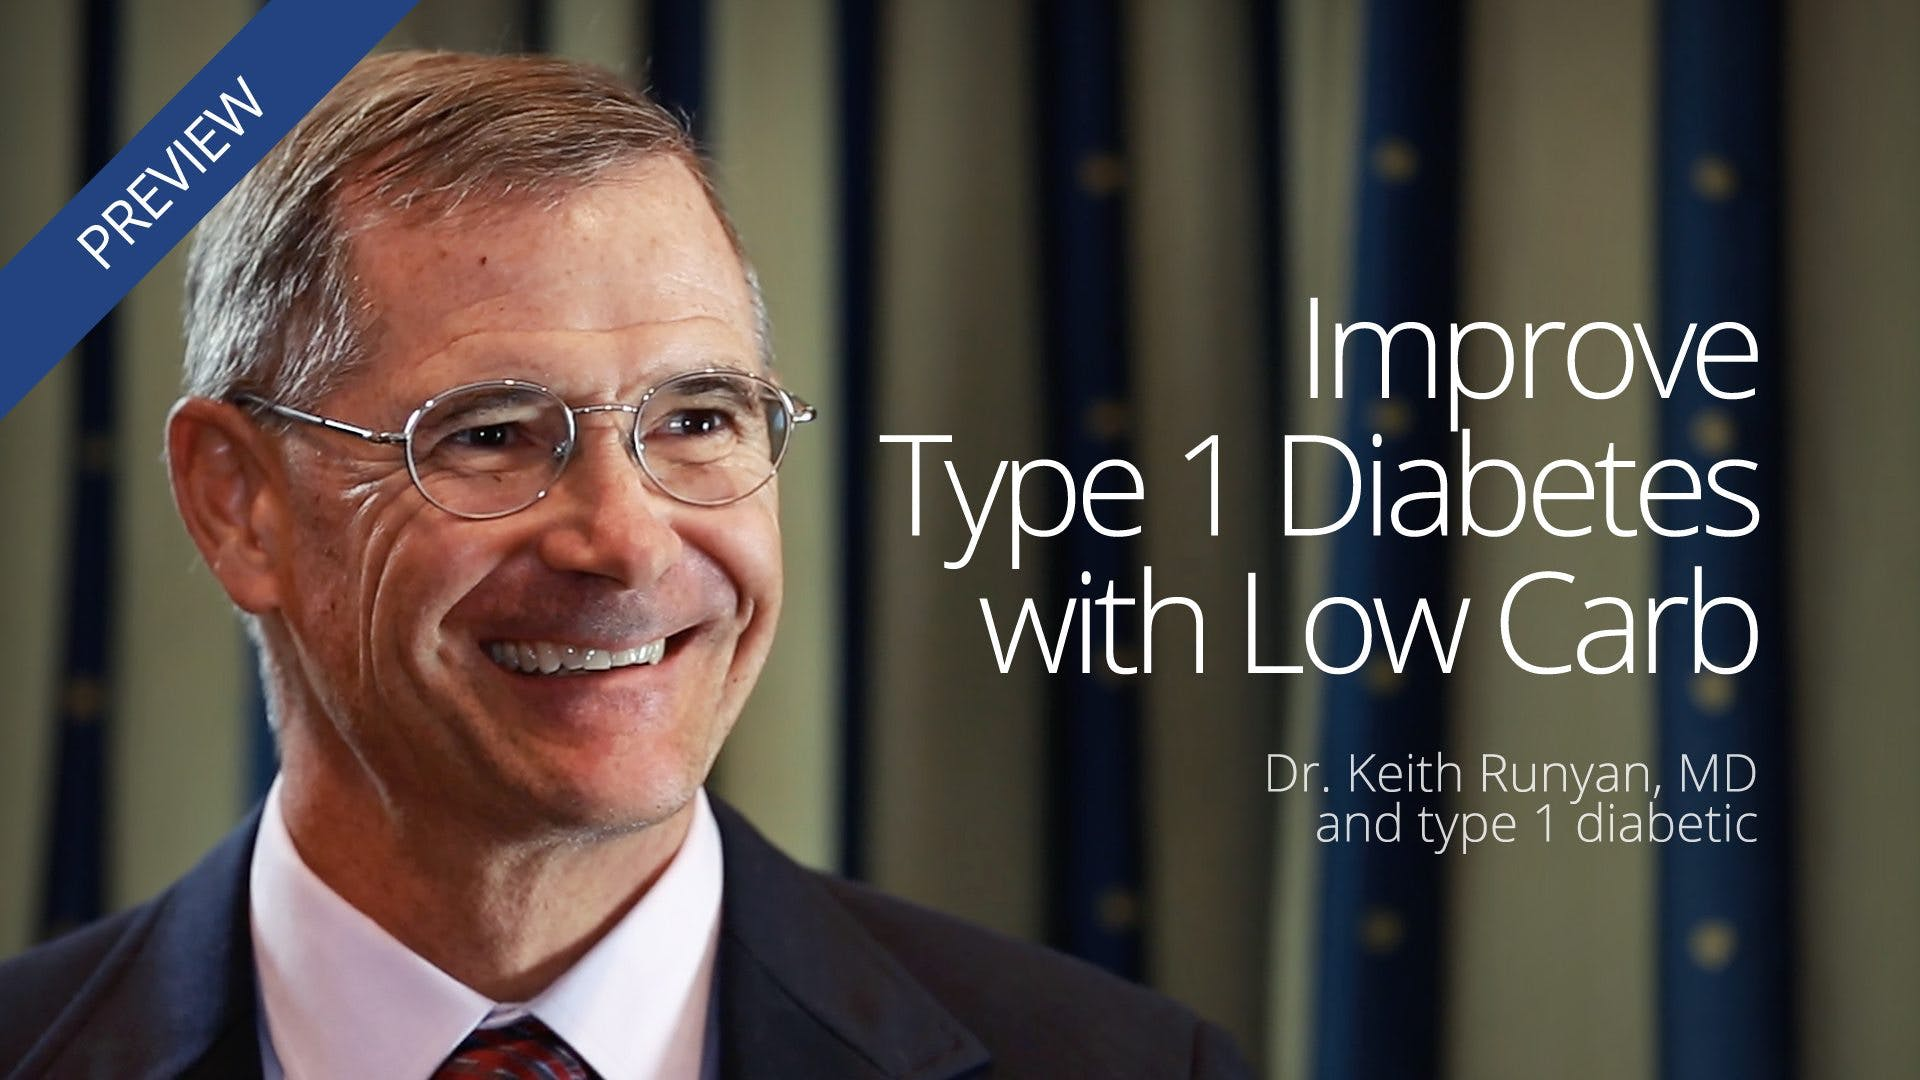 Improve Type 1 Diabetes with Low Carb